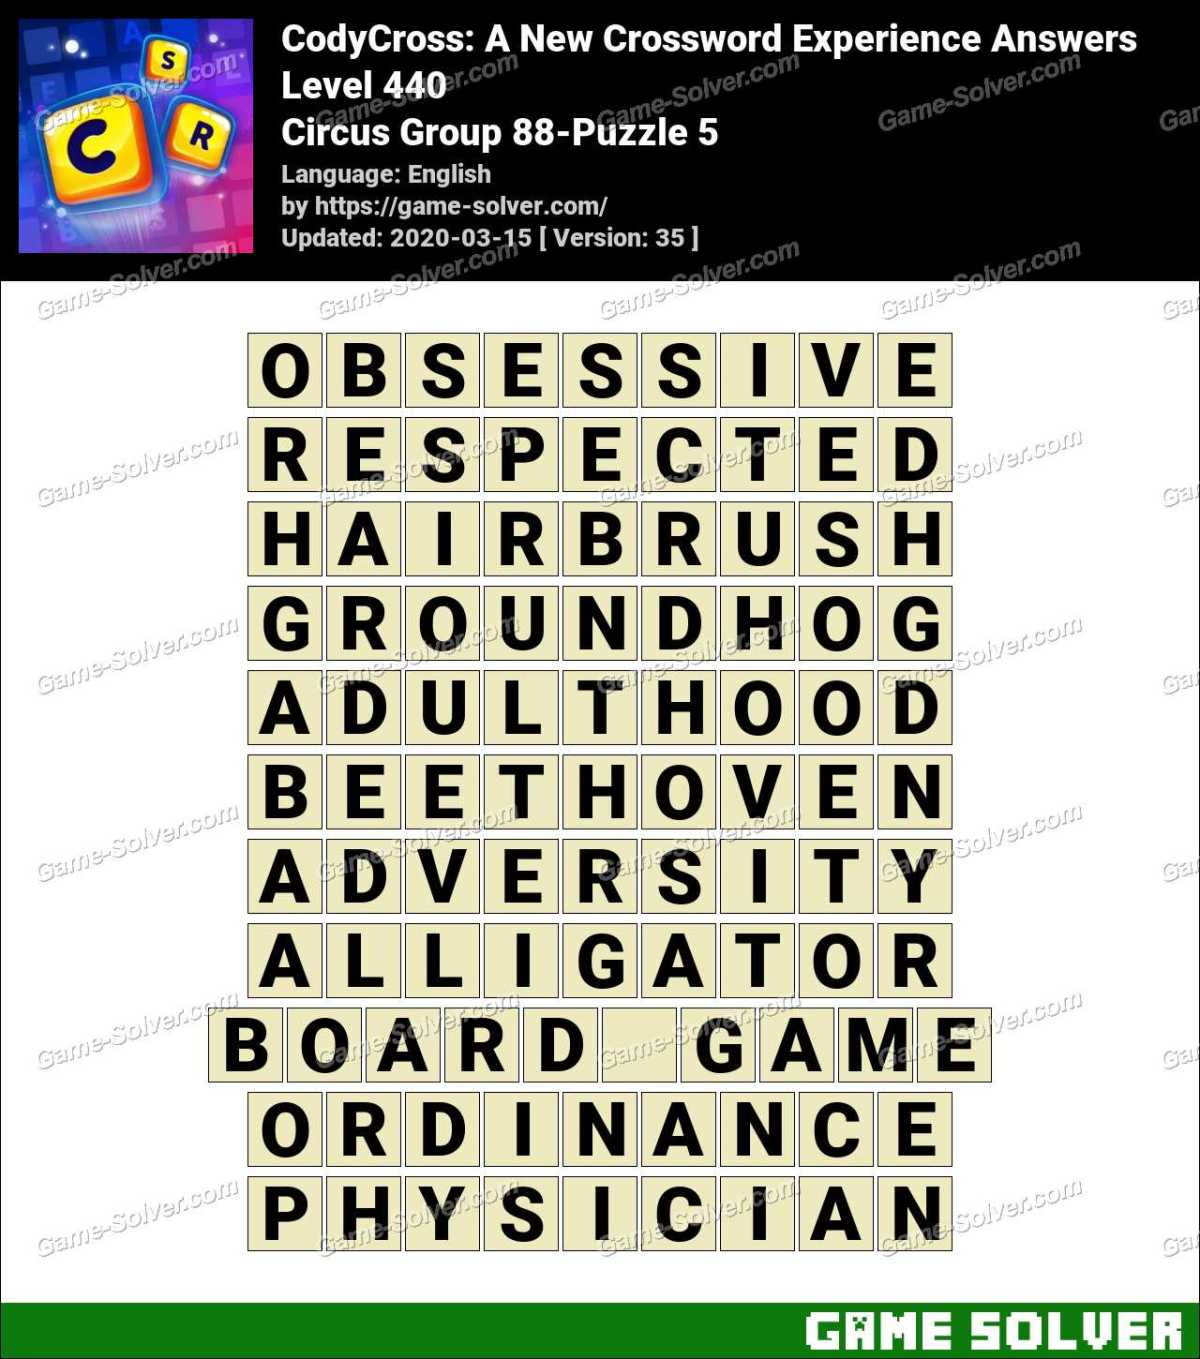 CodyCross Circus Group 88-Puzzle 5 Answers